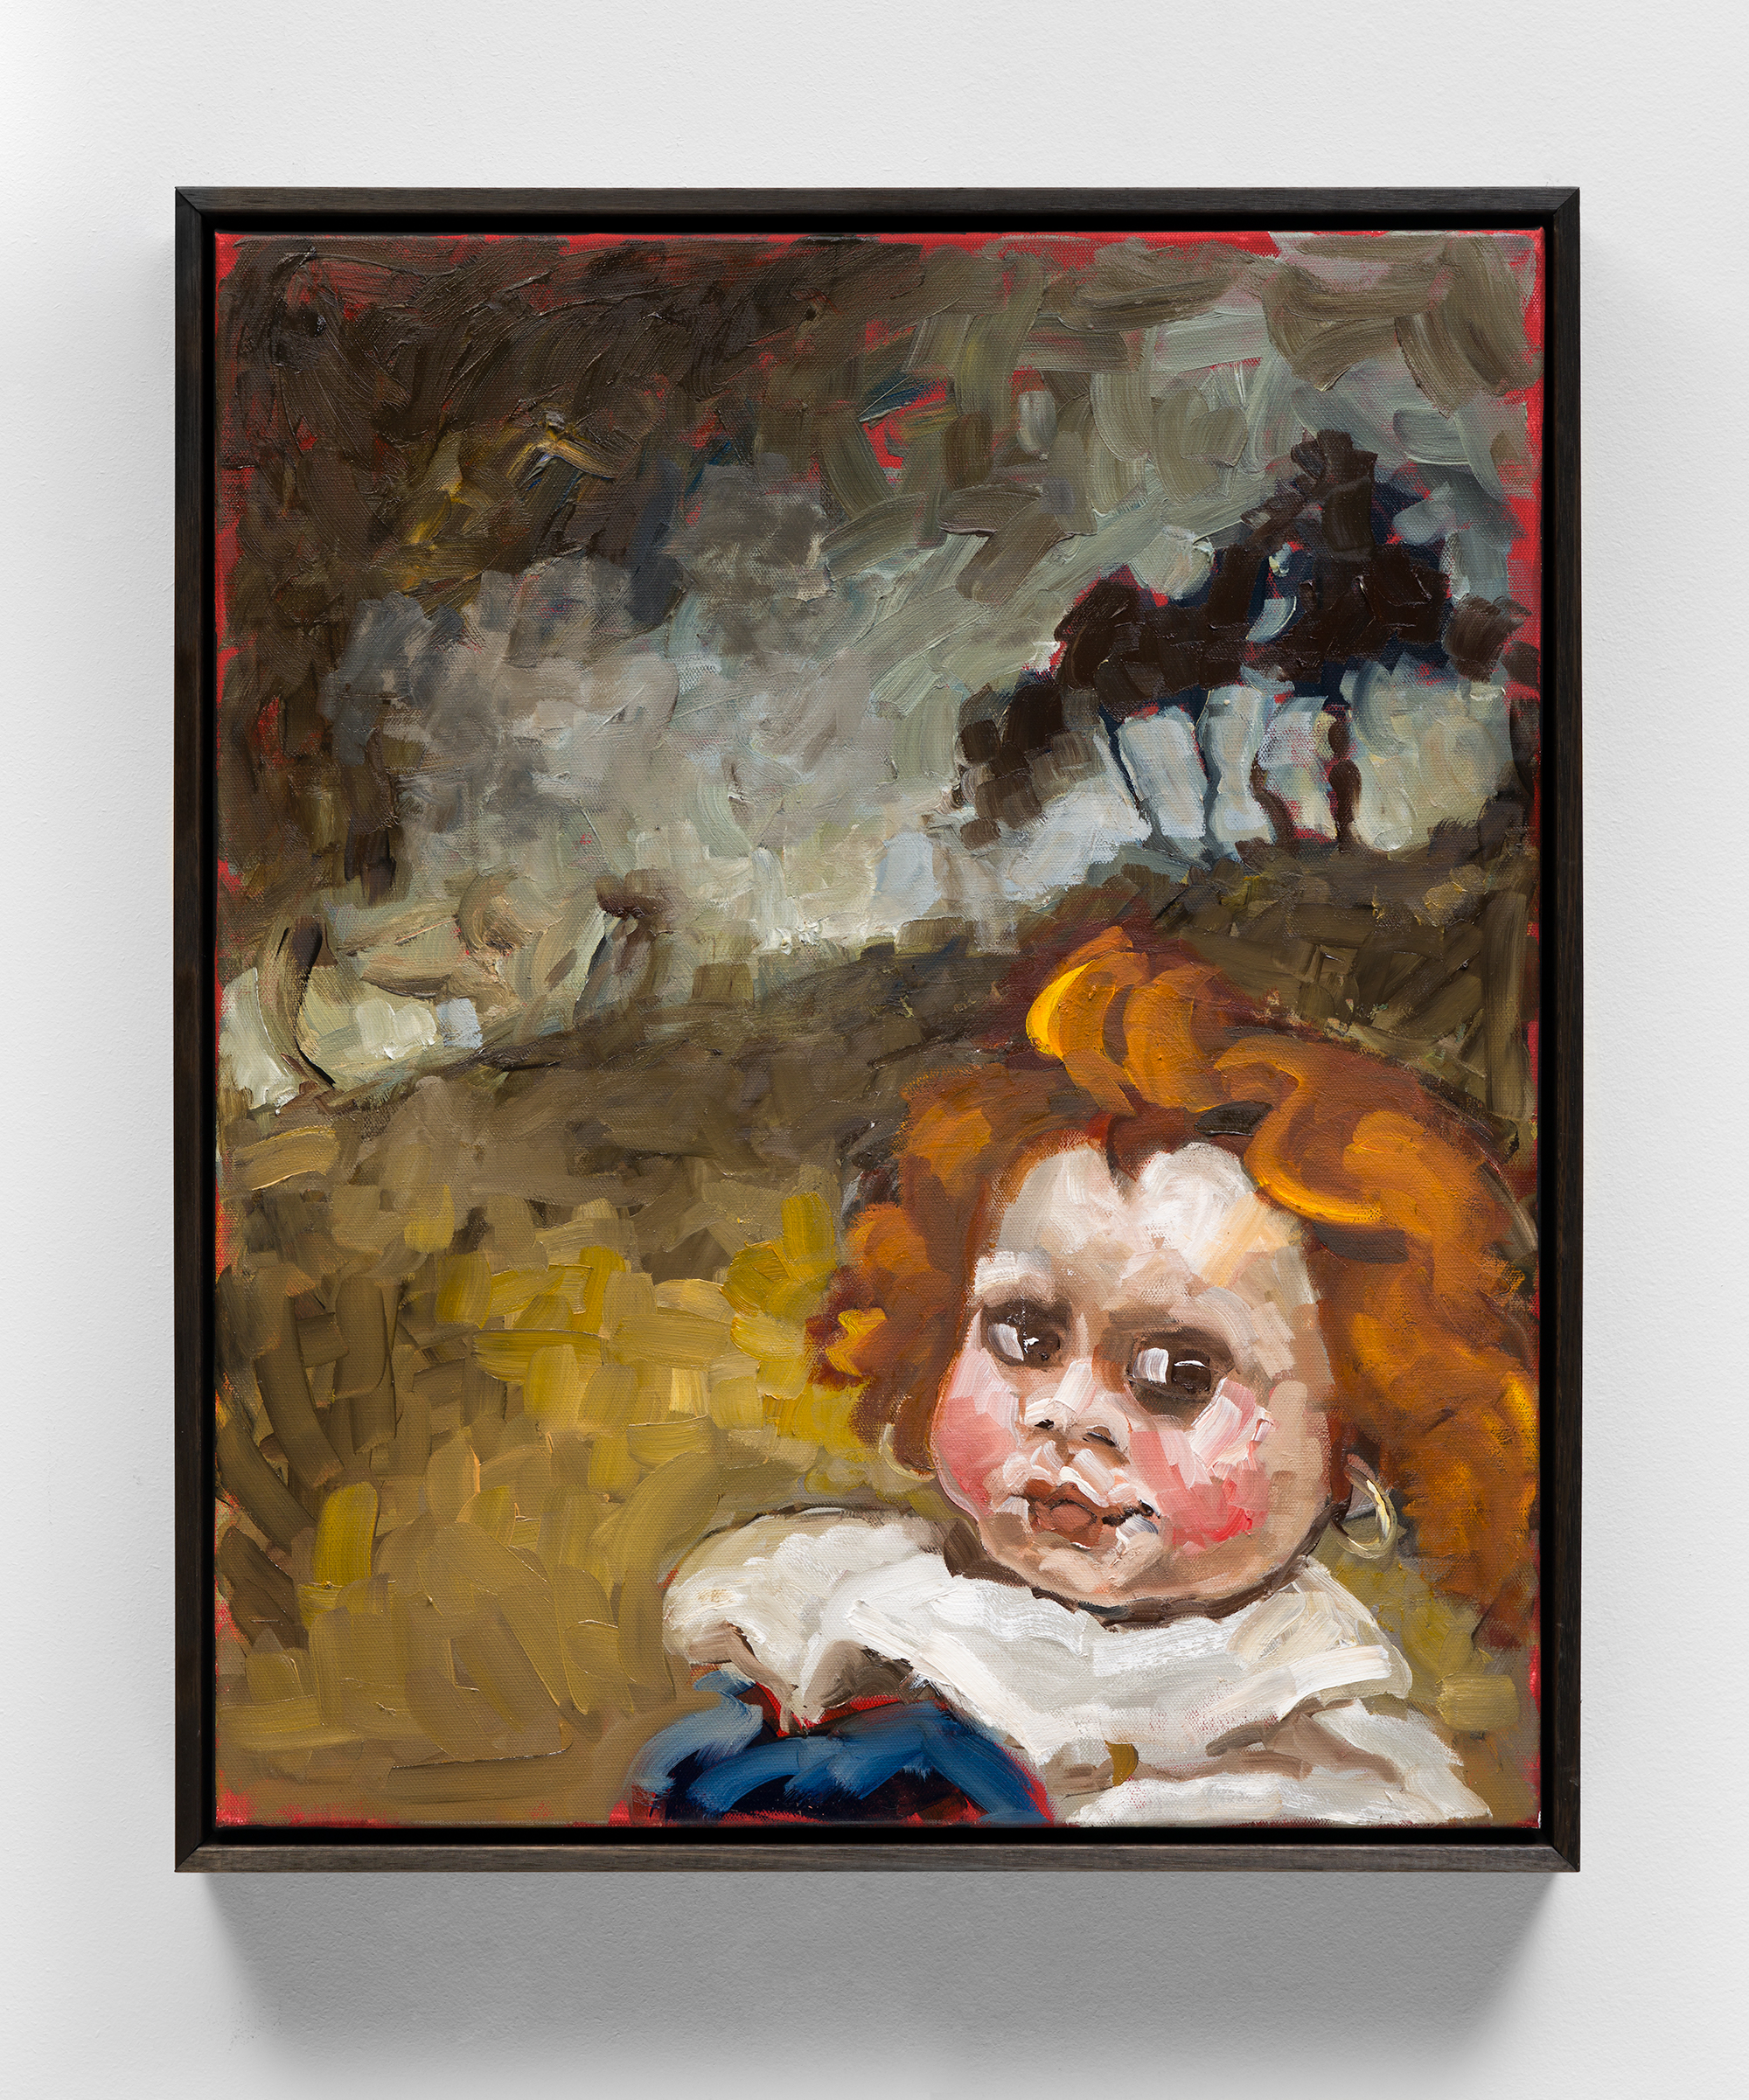 Toni-Messiter, My Mother Said, 2021, Oil on Canvas, 40 x 30 cm Photo Brett East Web Res